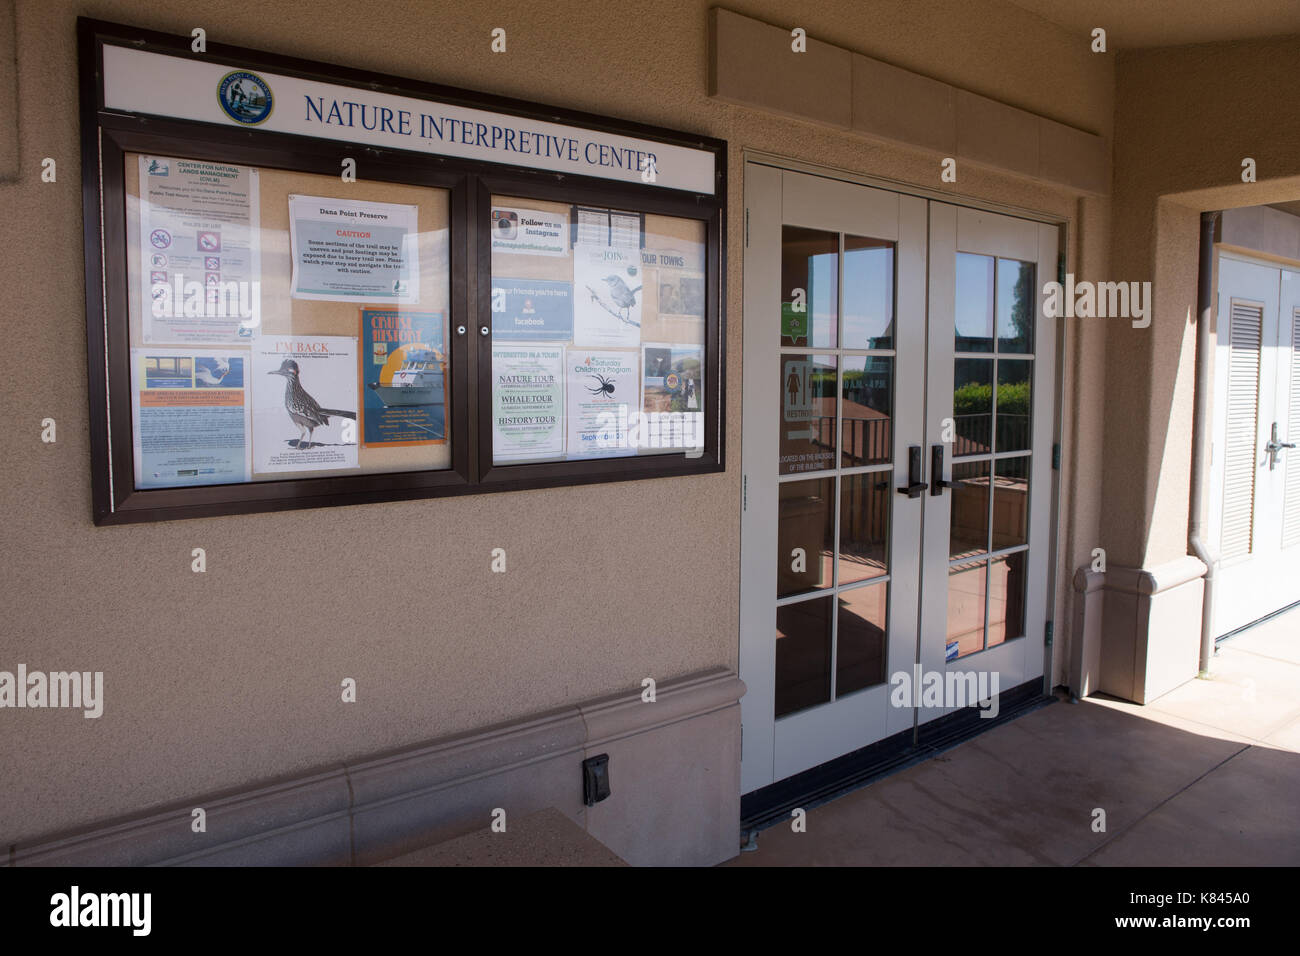 Exterior view of the entrance to the nature interpretive center in Dana Point, Southern California, USA. - Stock Image